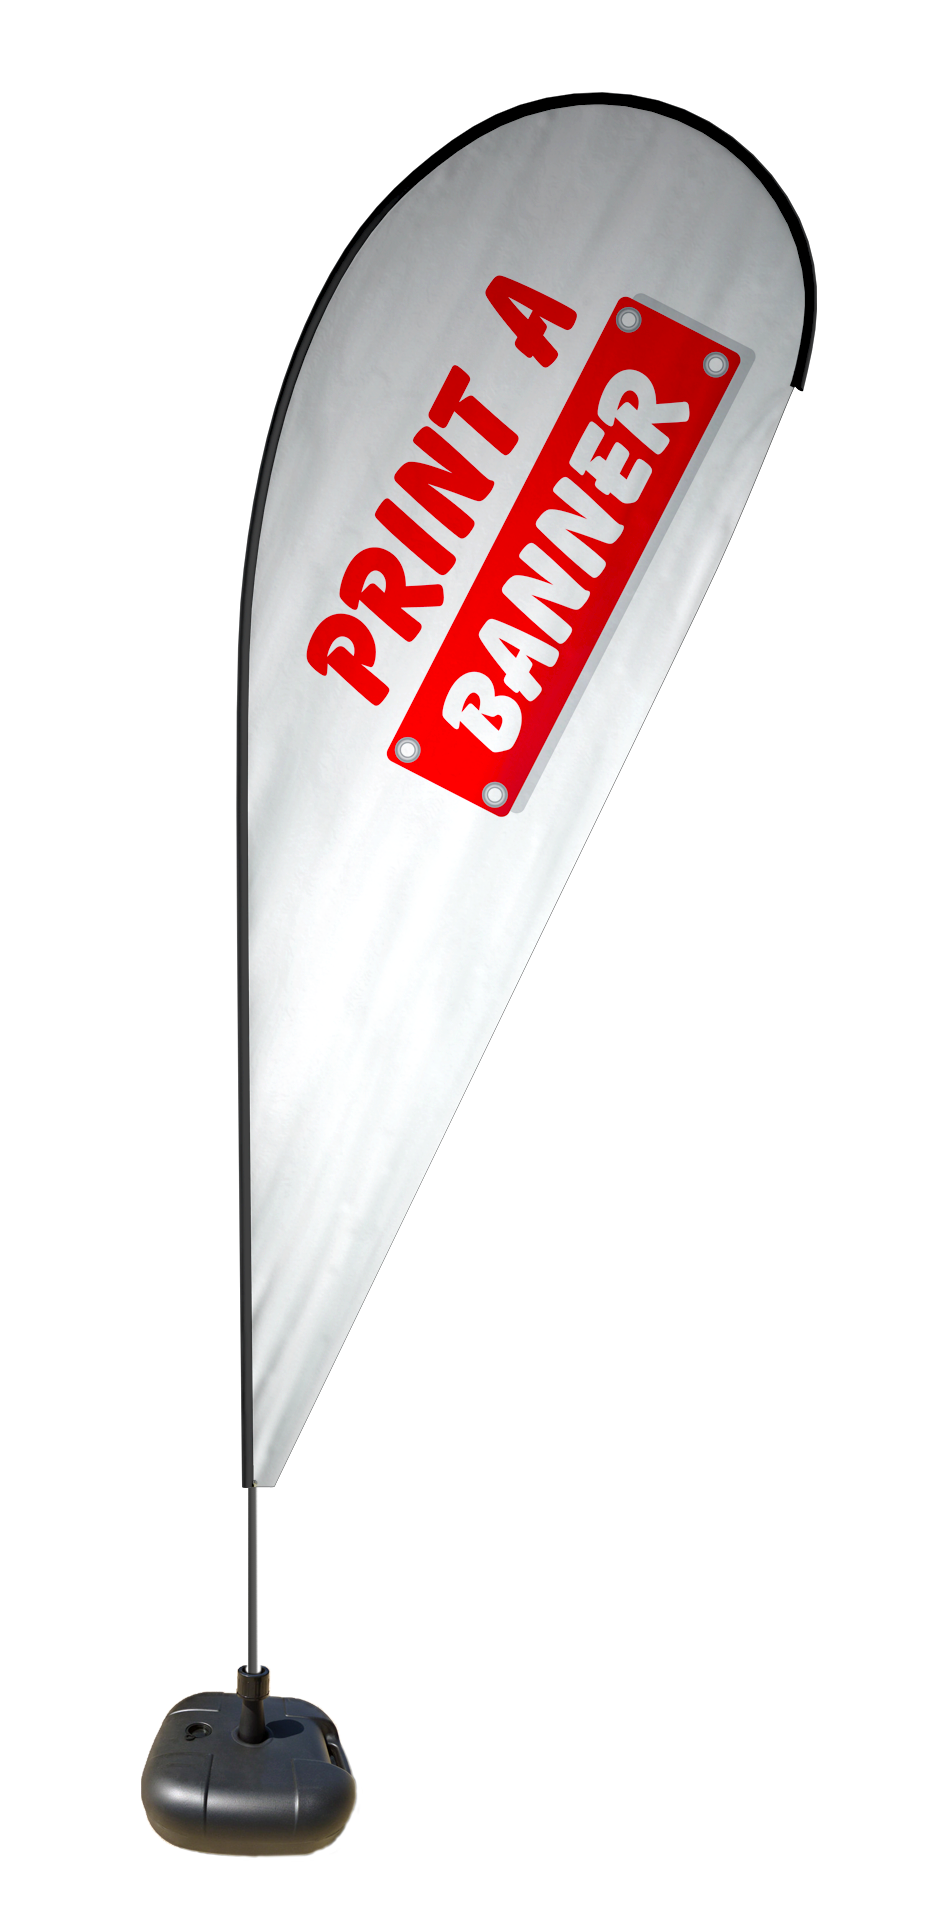 Tear Drop Flags for Advertising and Promotions